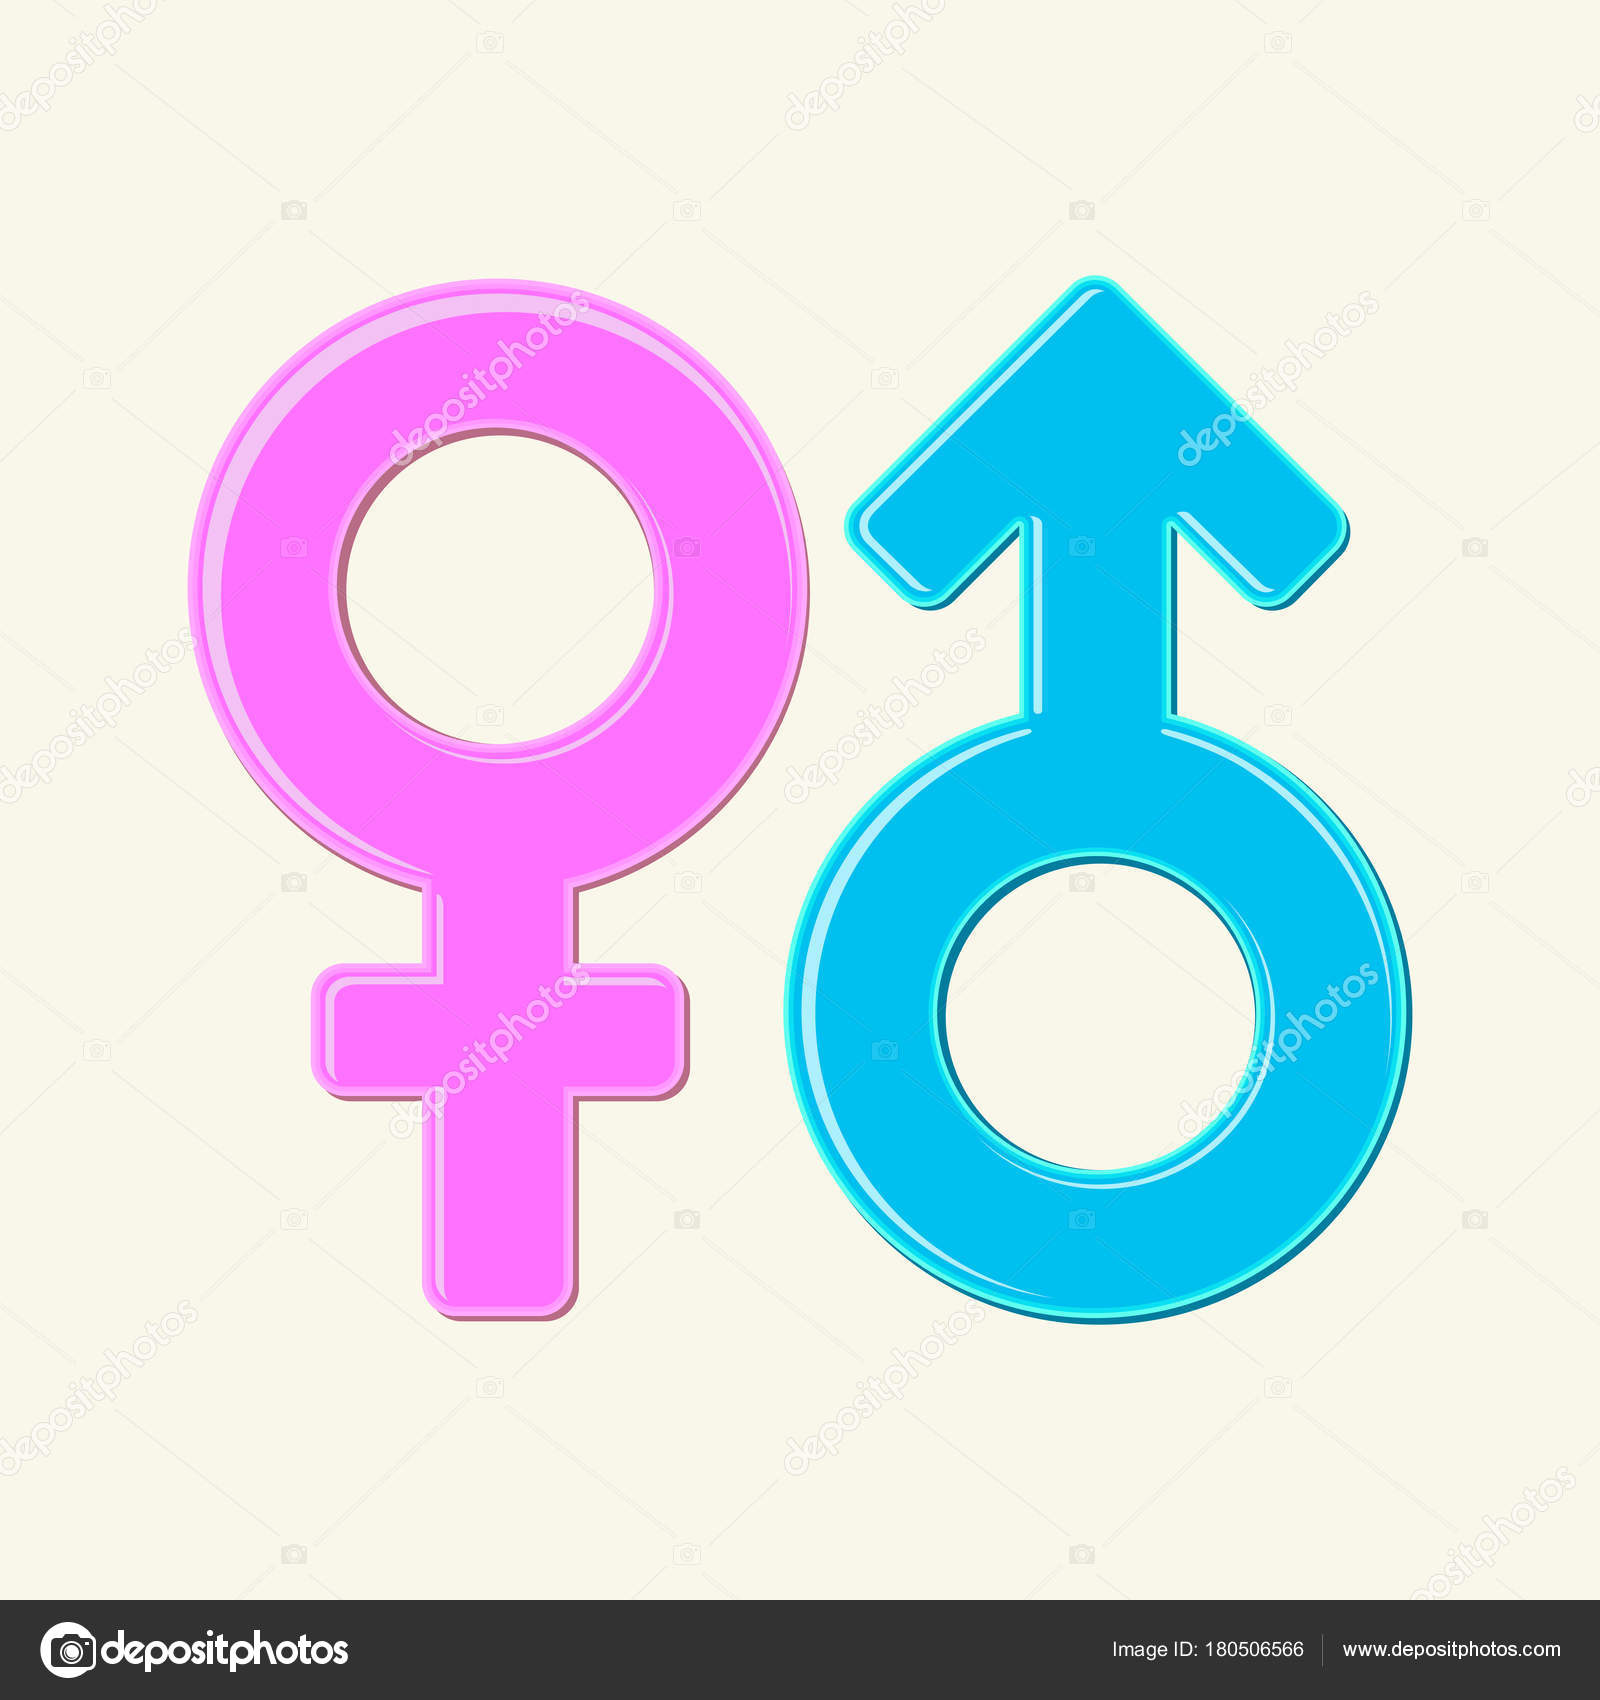 Mars Venus Symbols Male Female Signs Isolated Blue Pink Gender